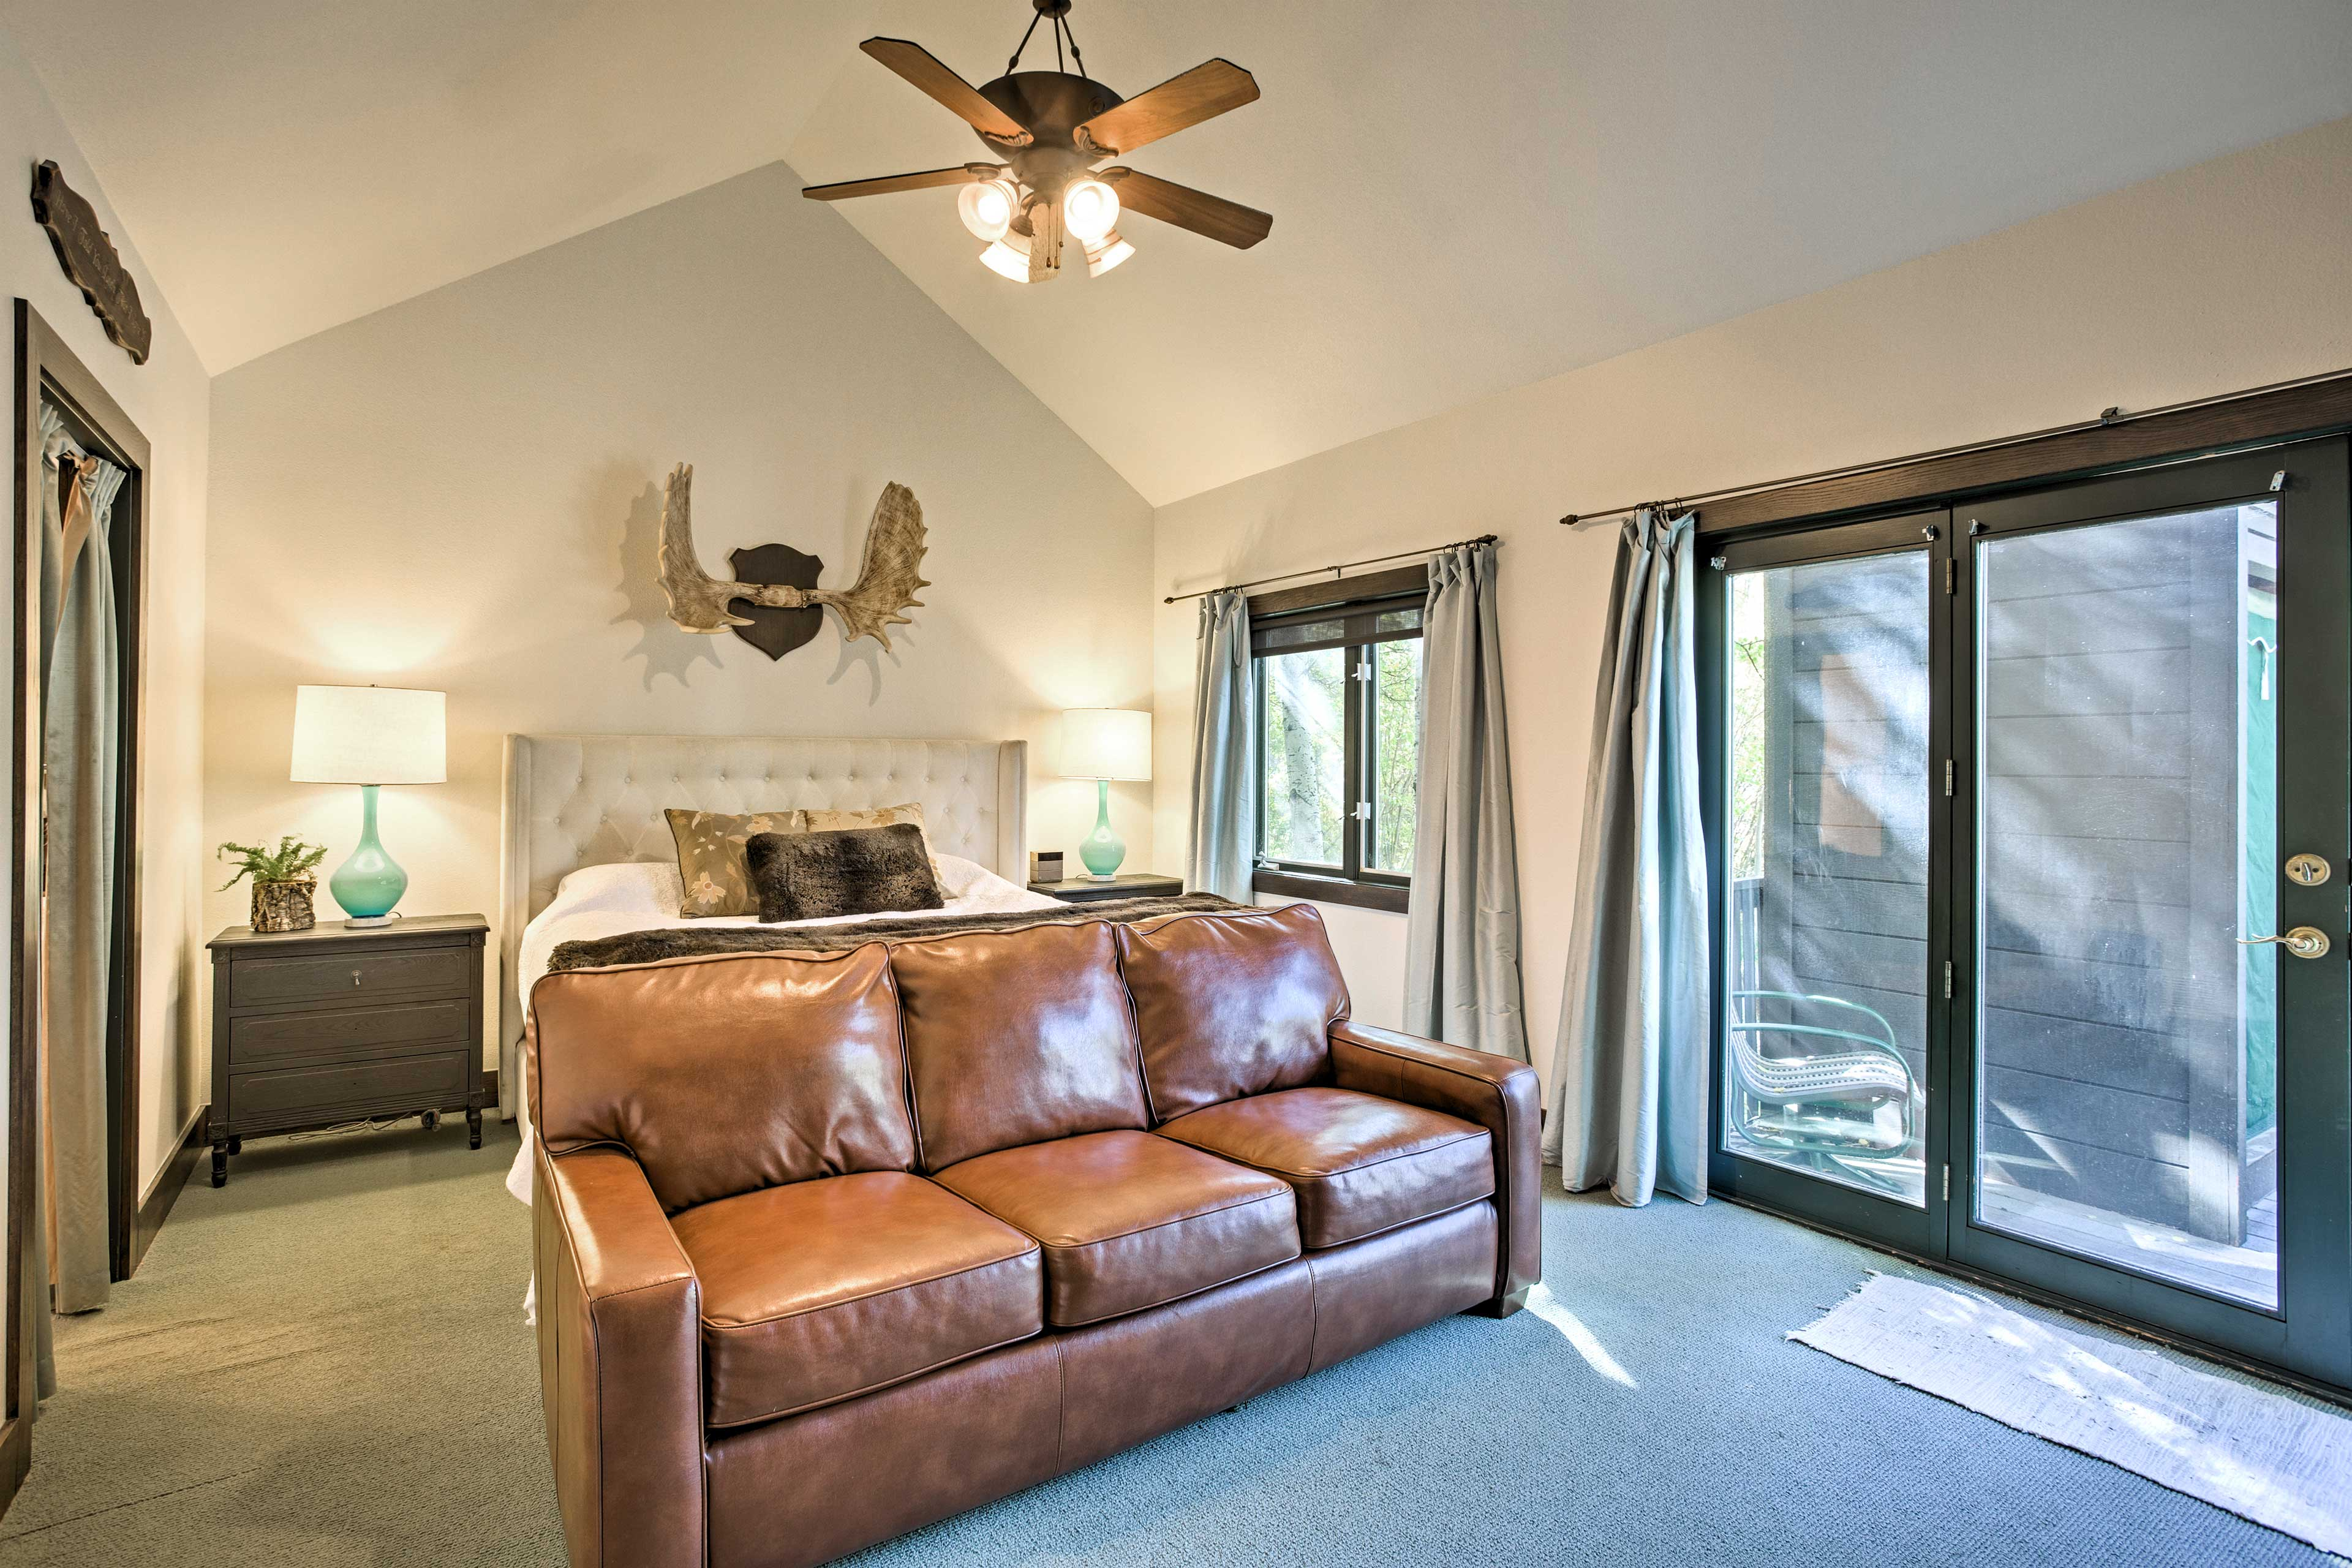 The master bedroom offers a comfy king bed and a pullout bed, along with a twin mattress in the closet.